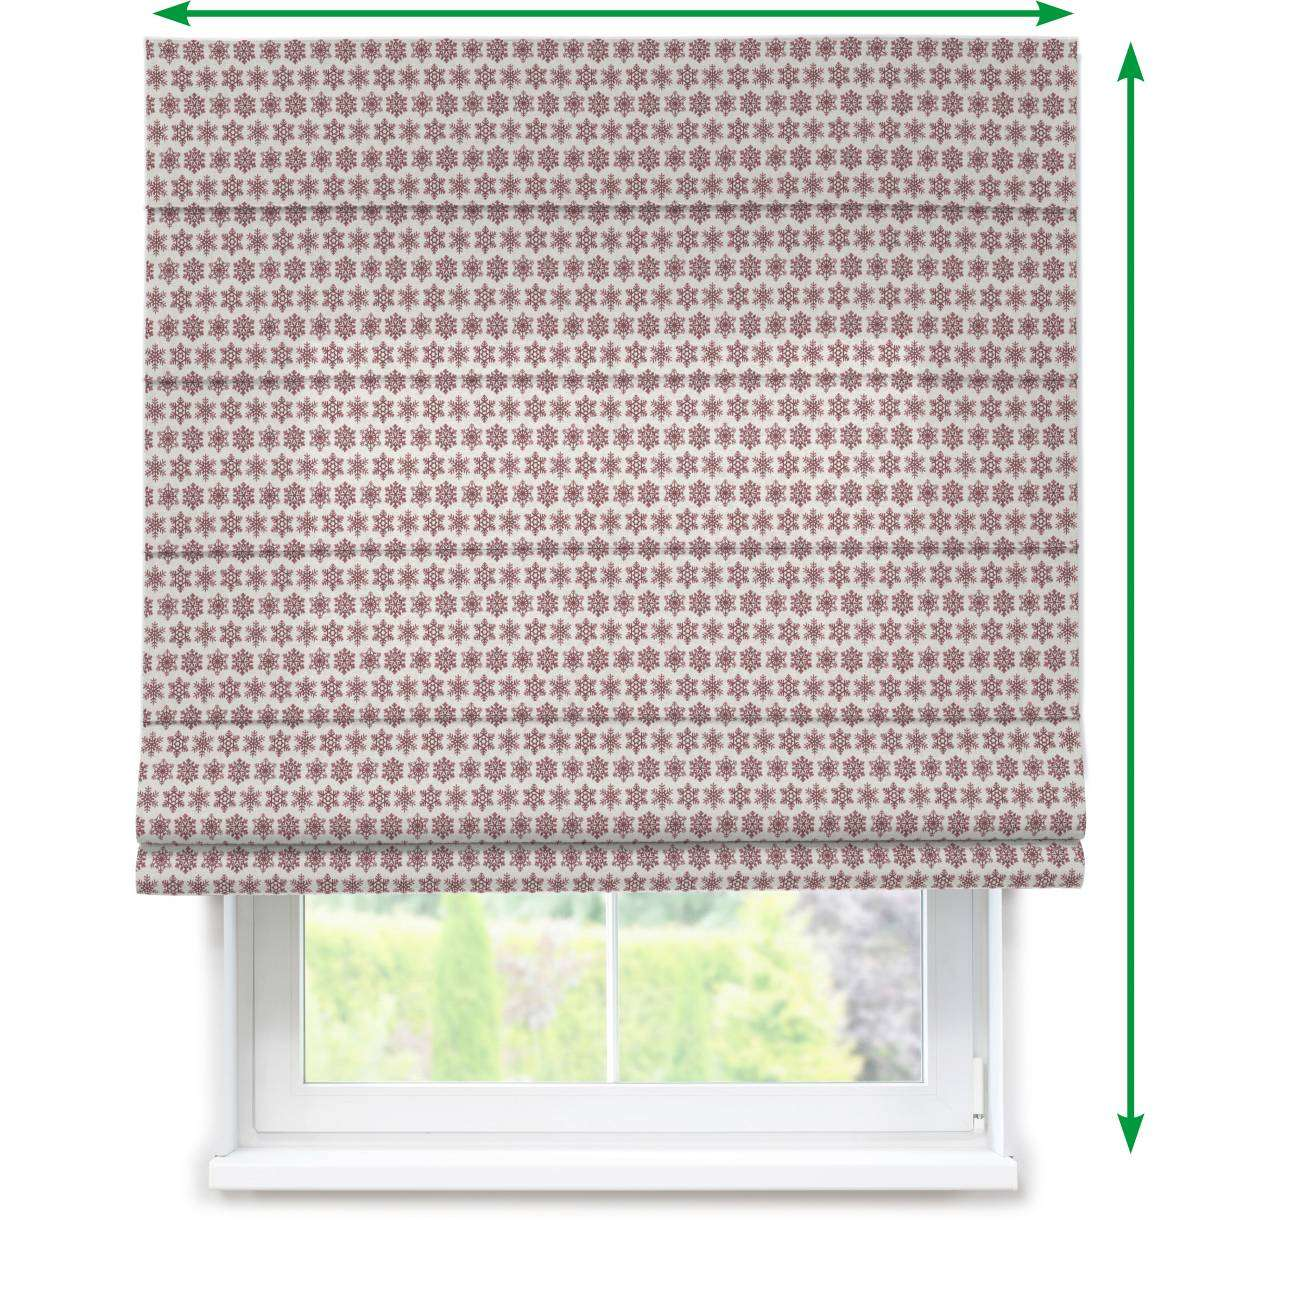 Capri roman blind in collection Christmas, fabric: 630-22